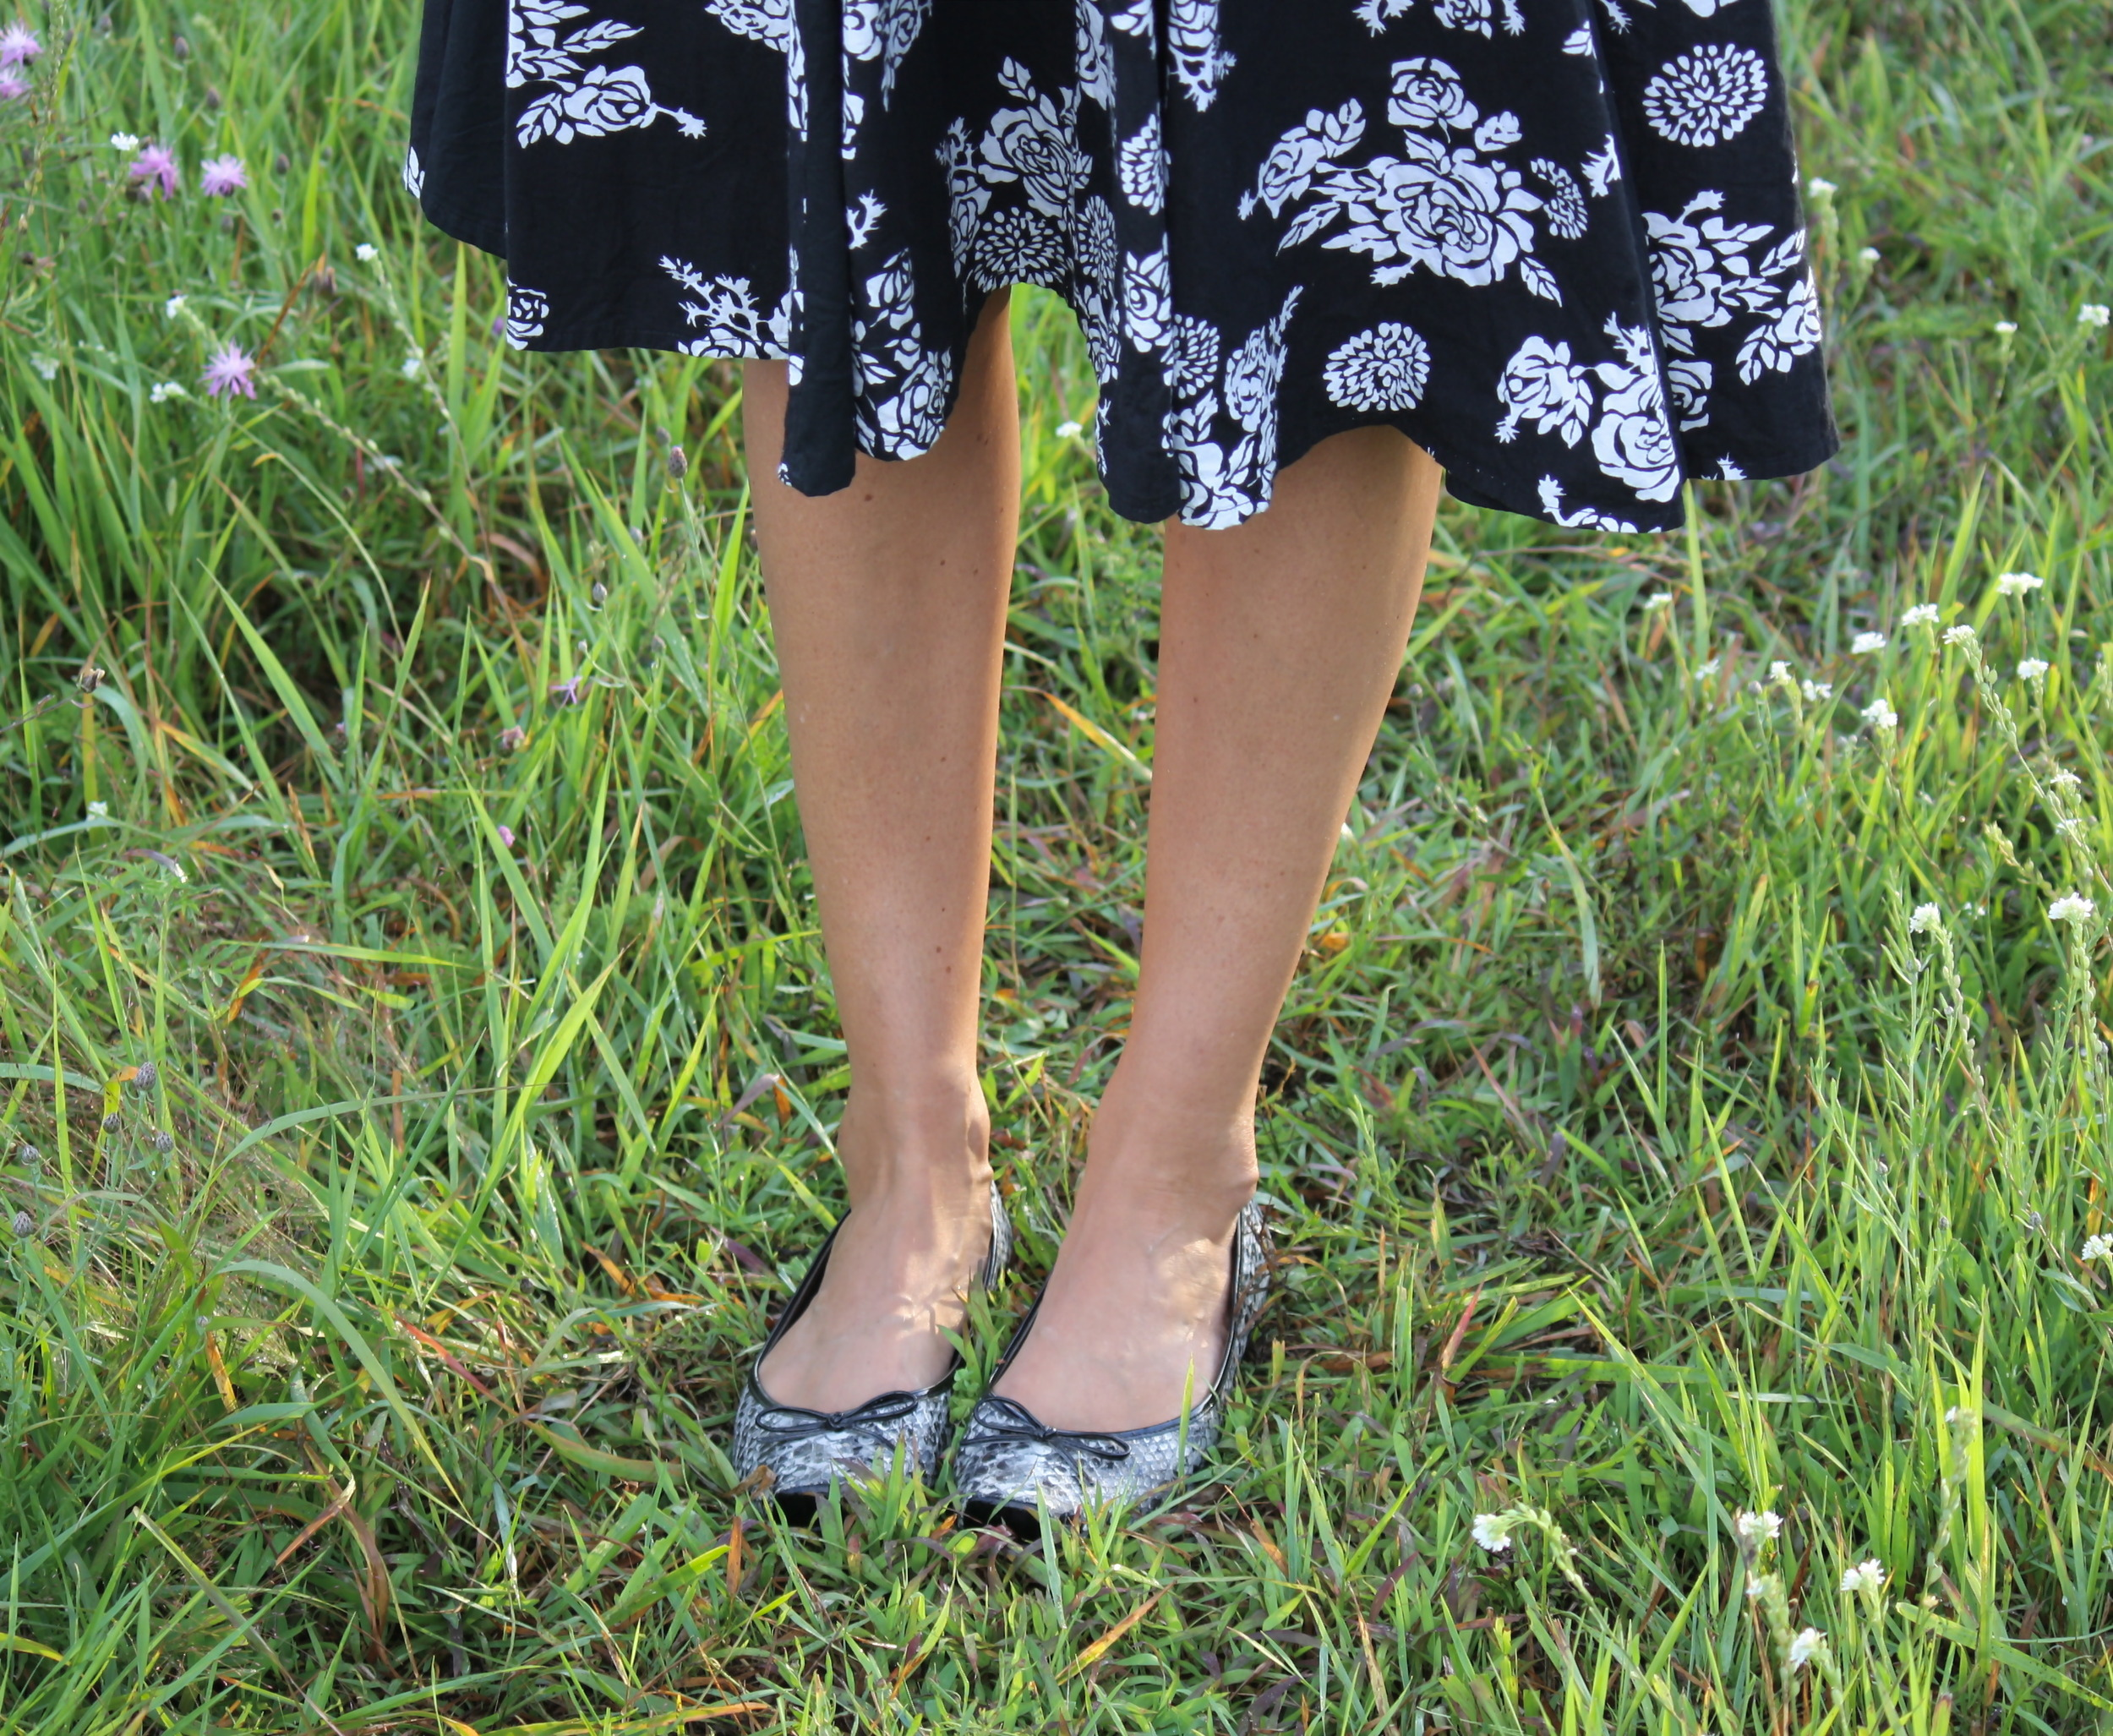 Ballet flats are a must when capturing the essence of Audrey.